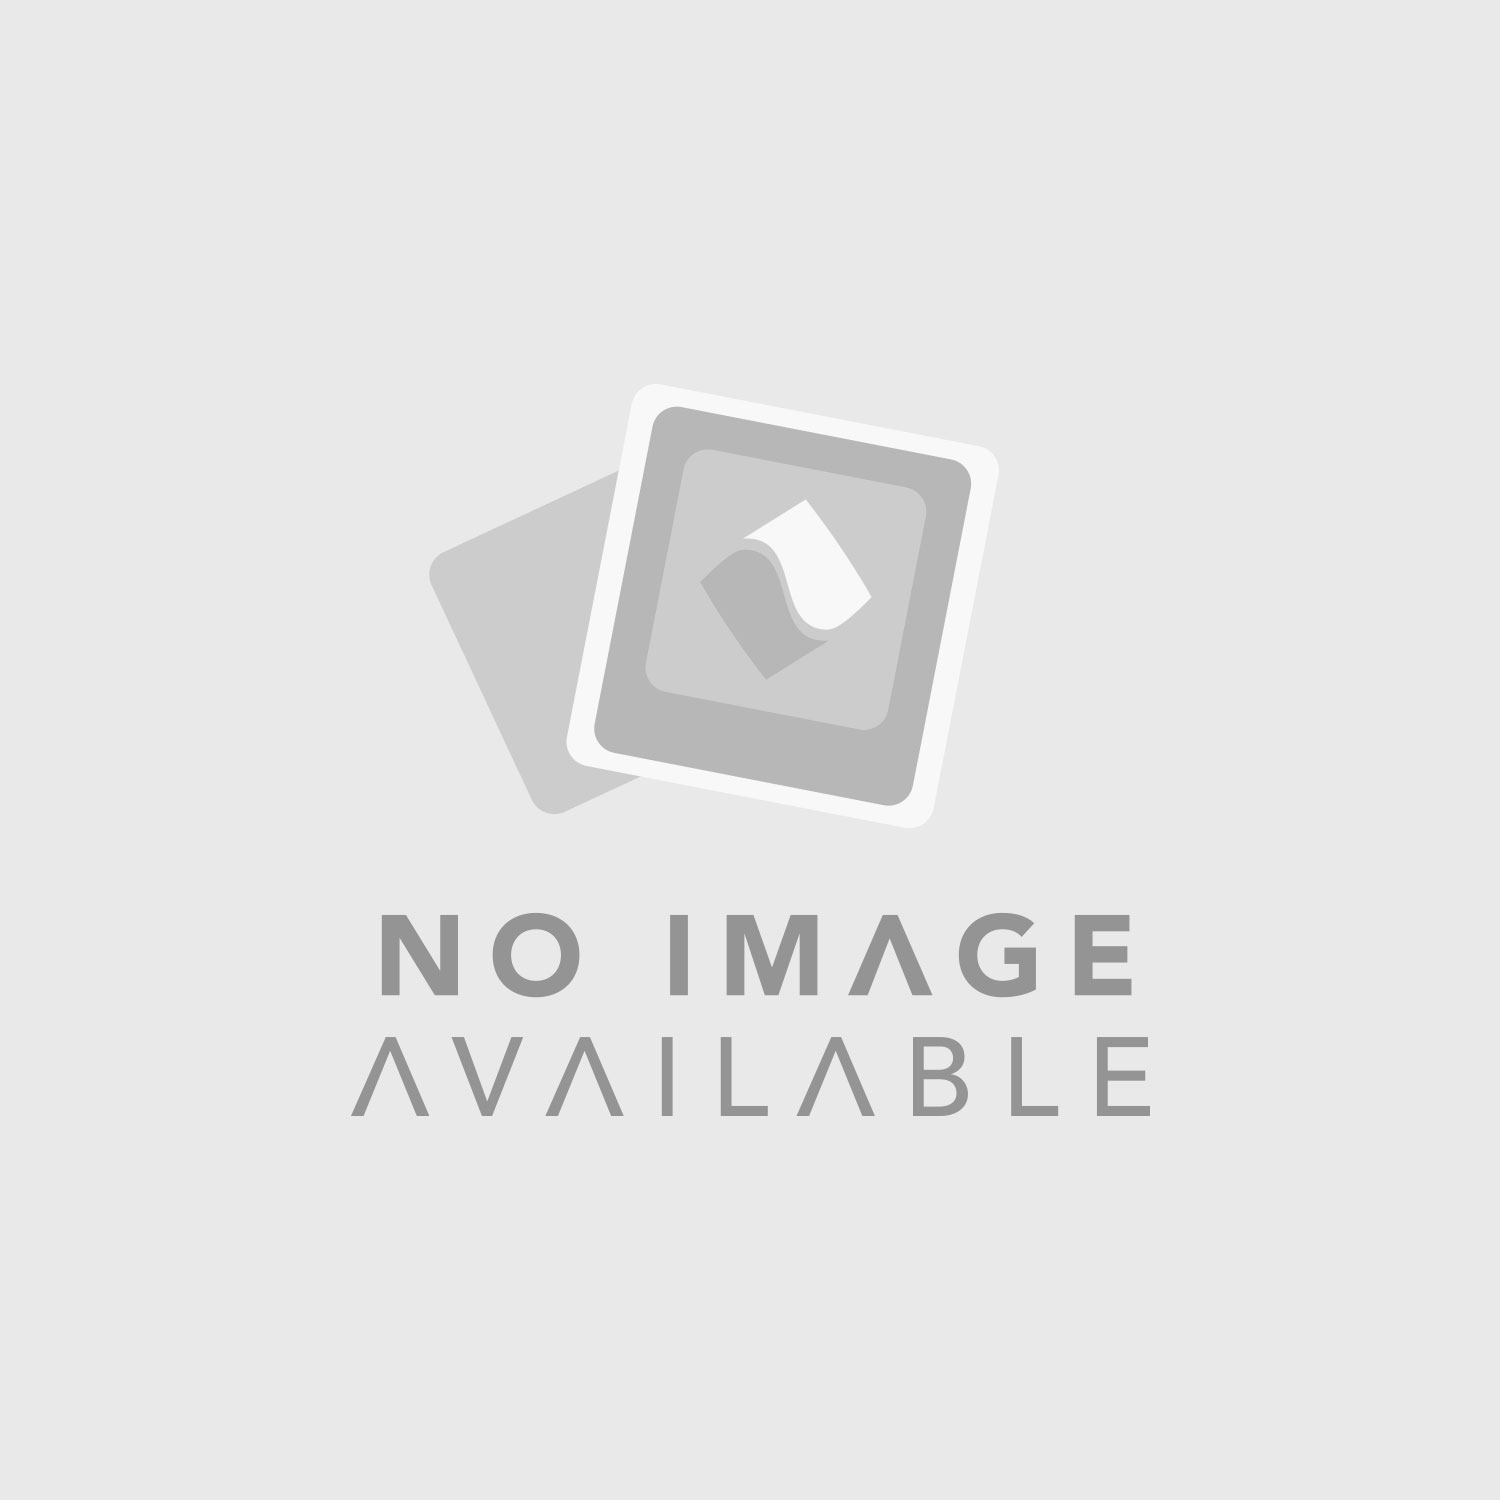 Neutrik 204L Single Gang Wallplate with Dual Female Speakon